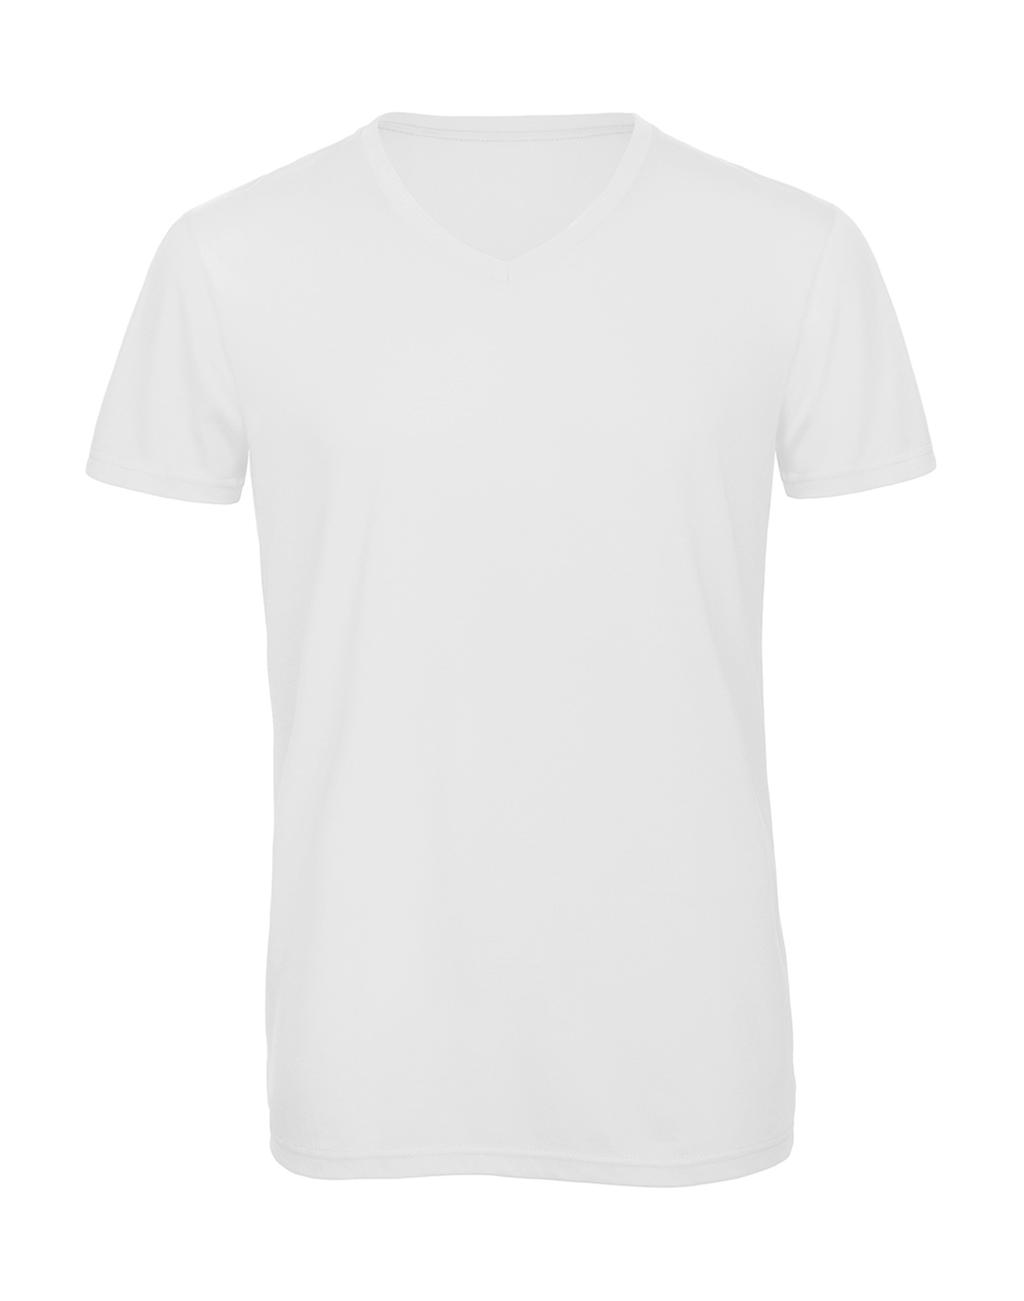 B & C V Triblend/men T-Shirt